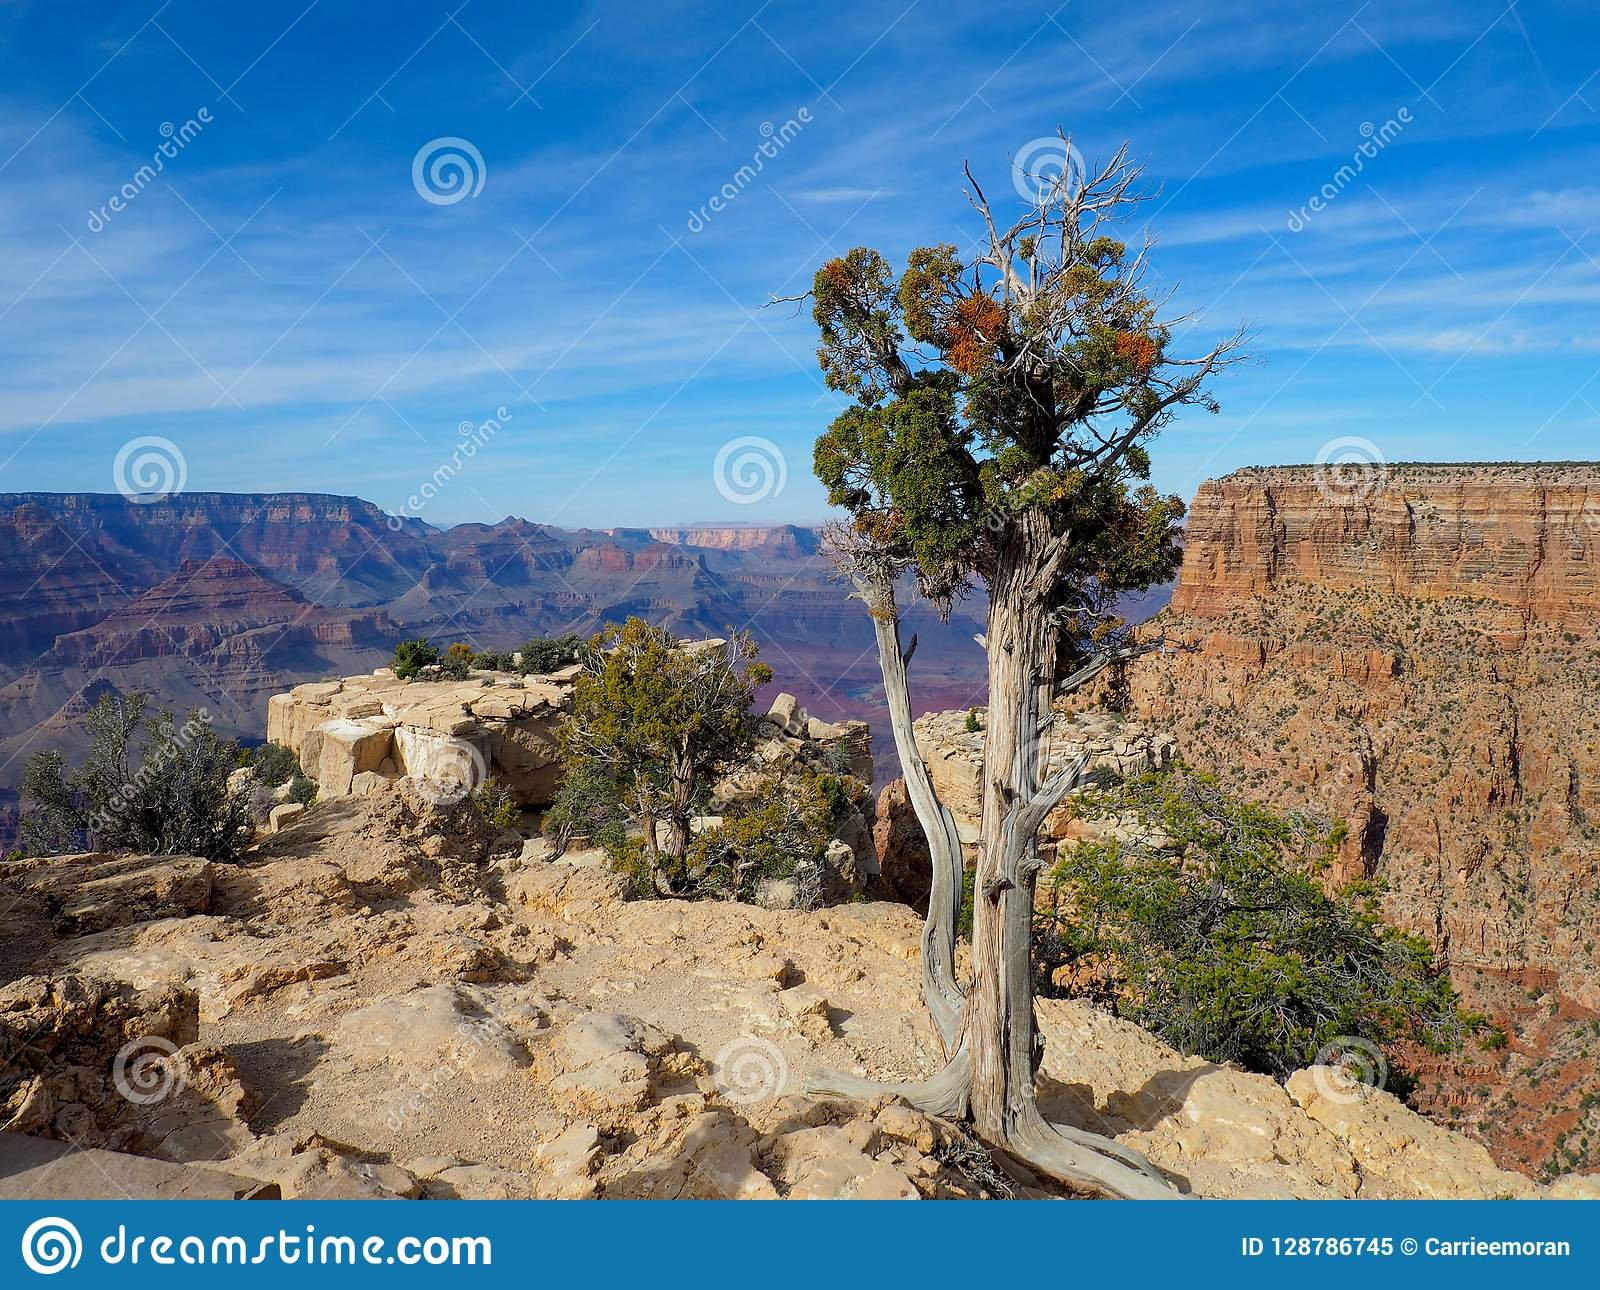 Juniper Tree on the Rim of the Grand Canyon